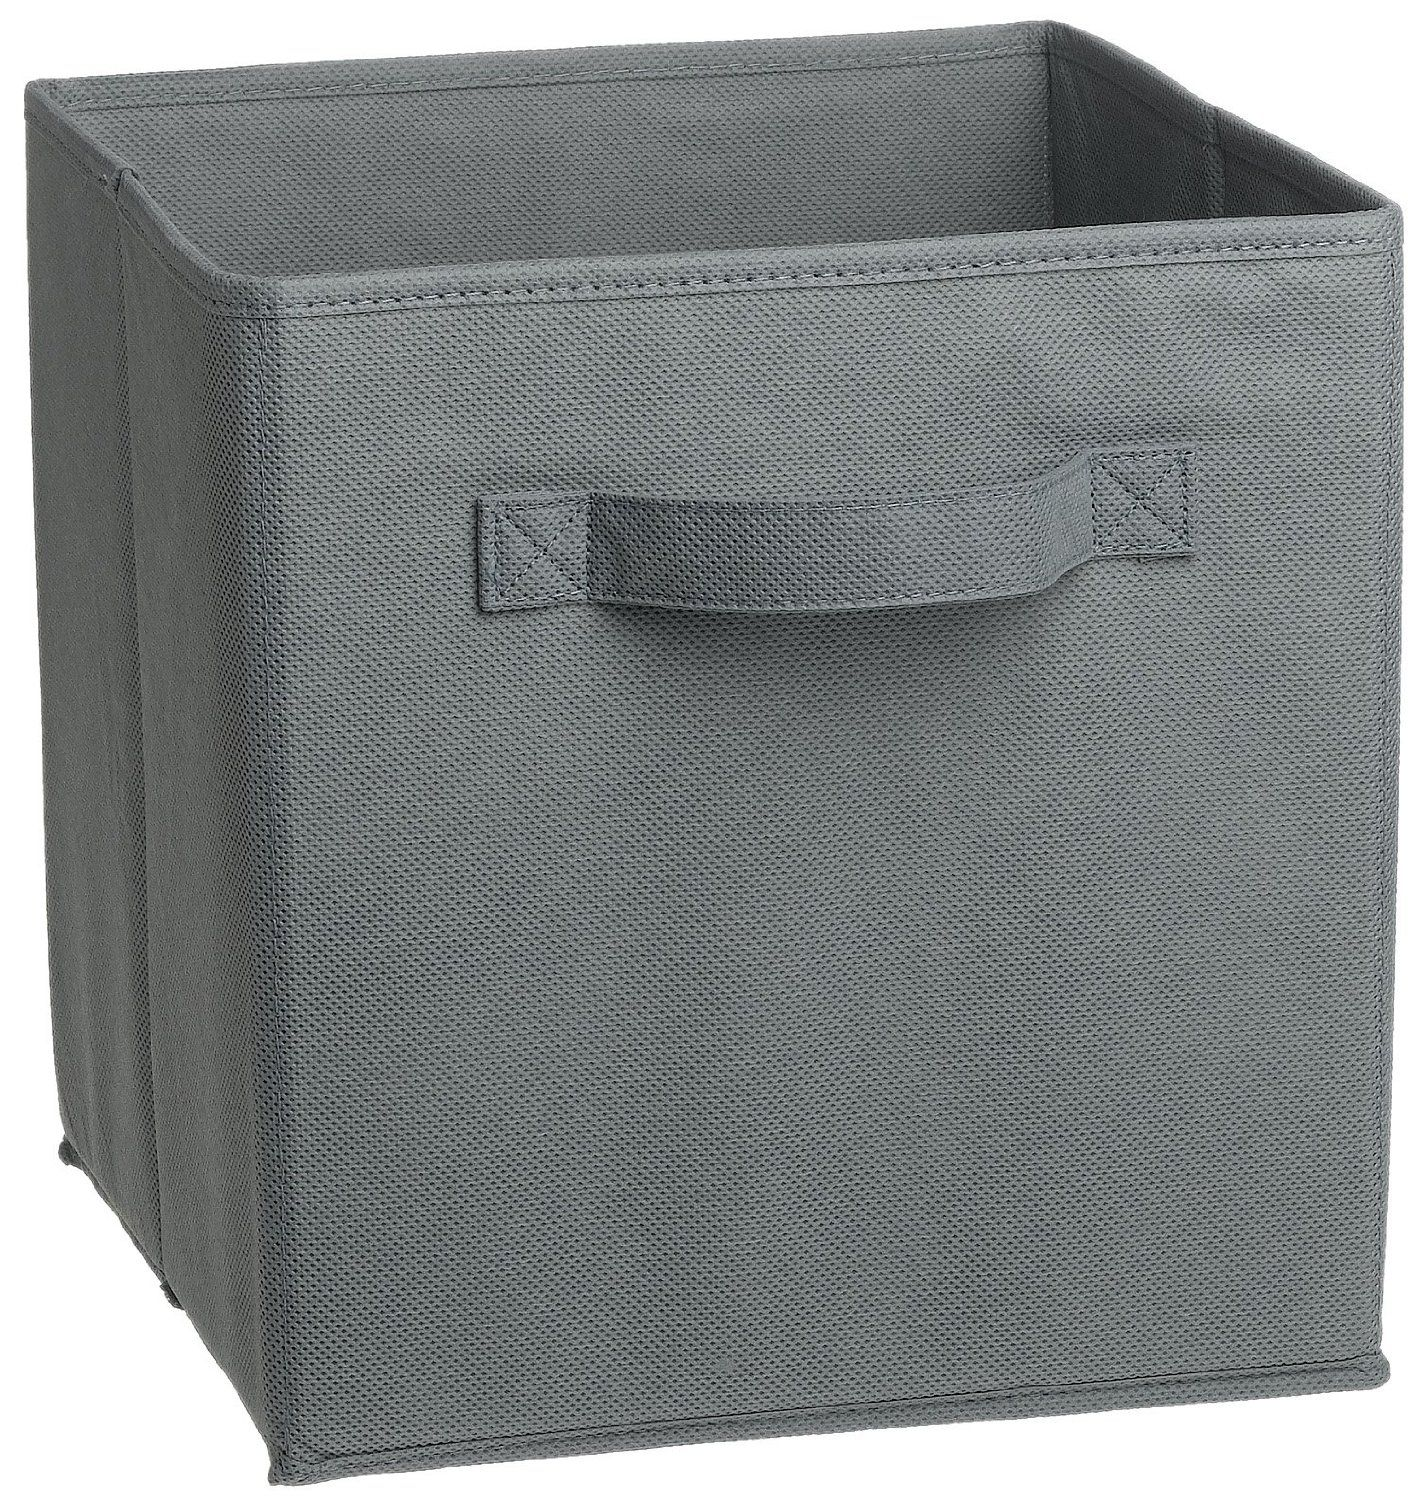 maid kit amazing ideas now storage basket drawers closet wire available closetmaid design